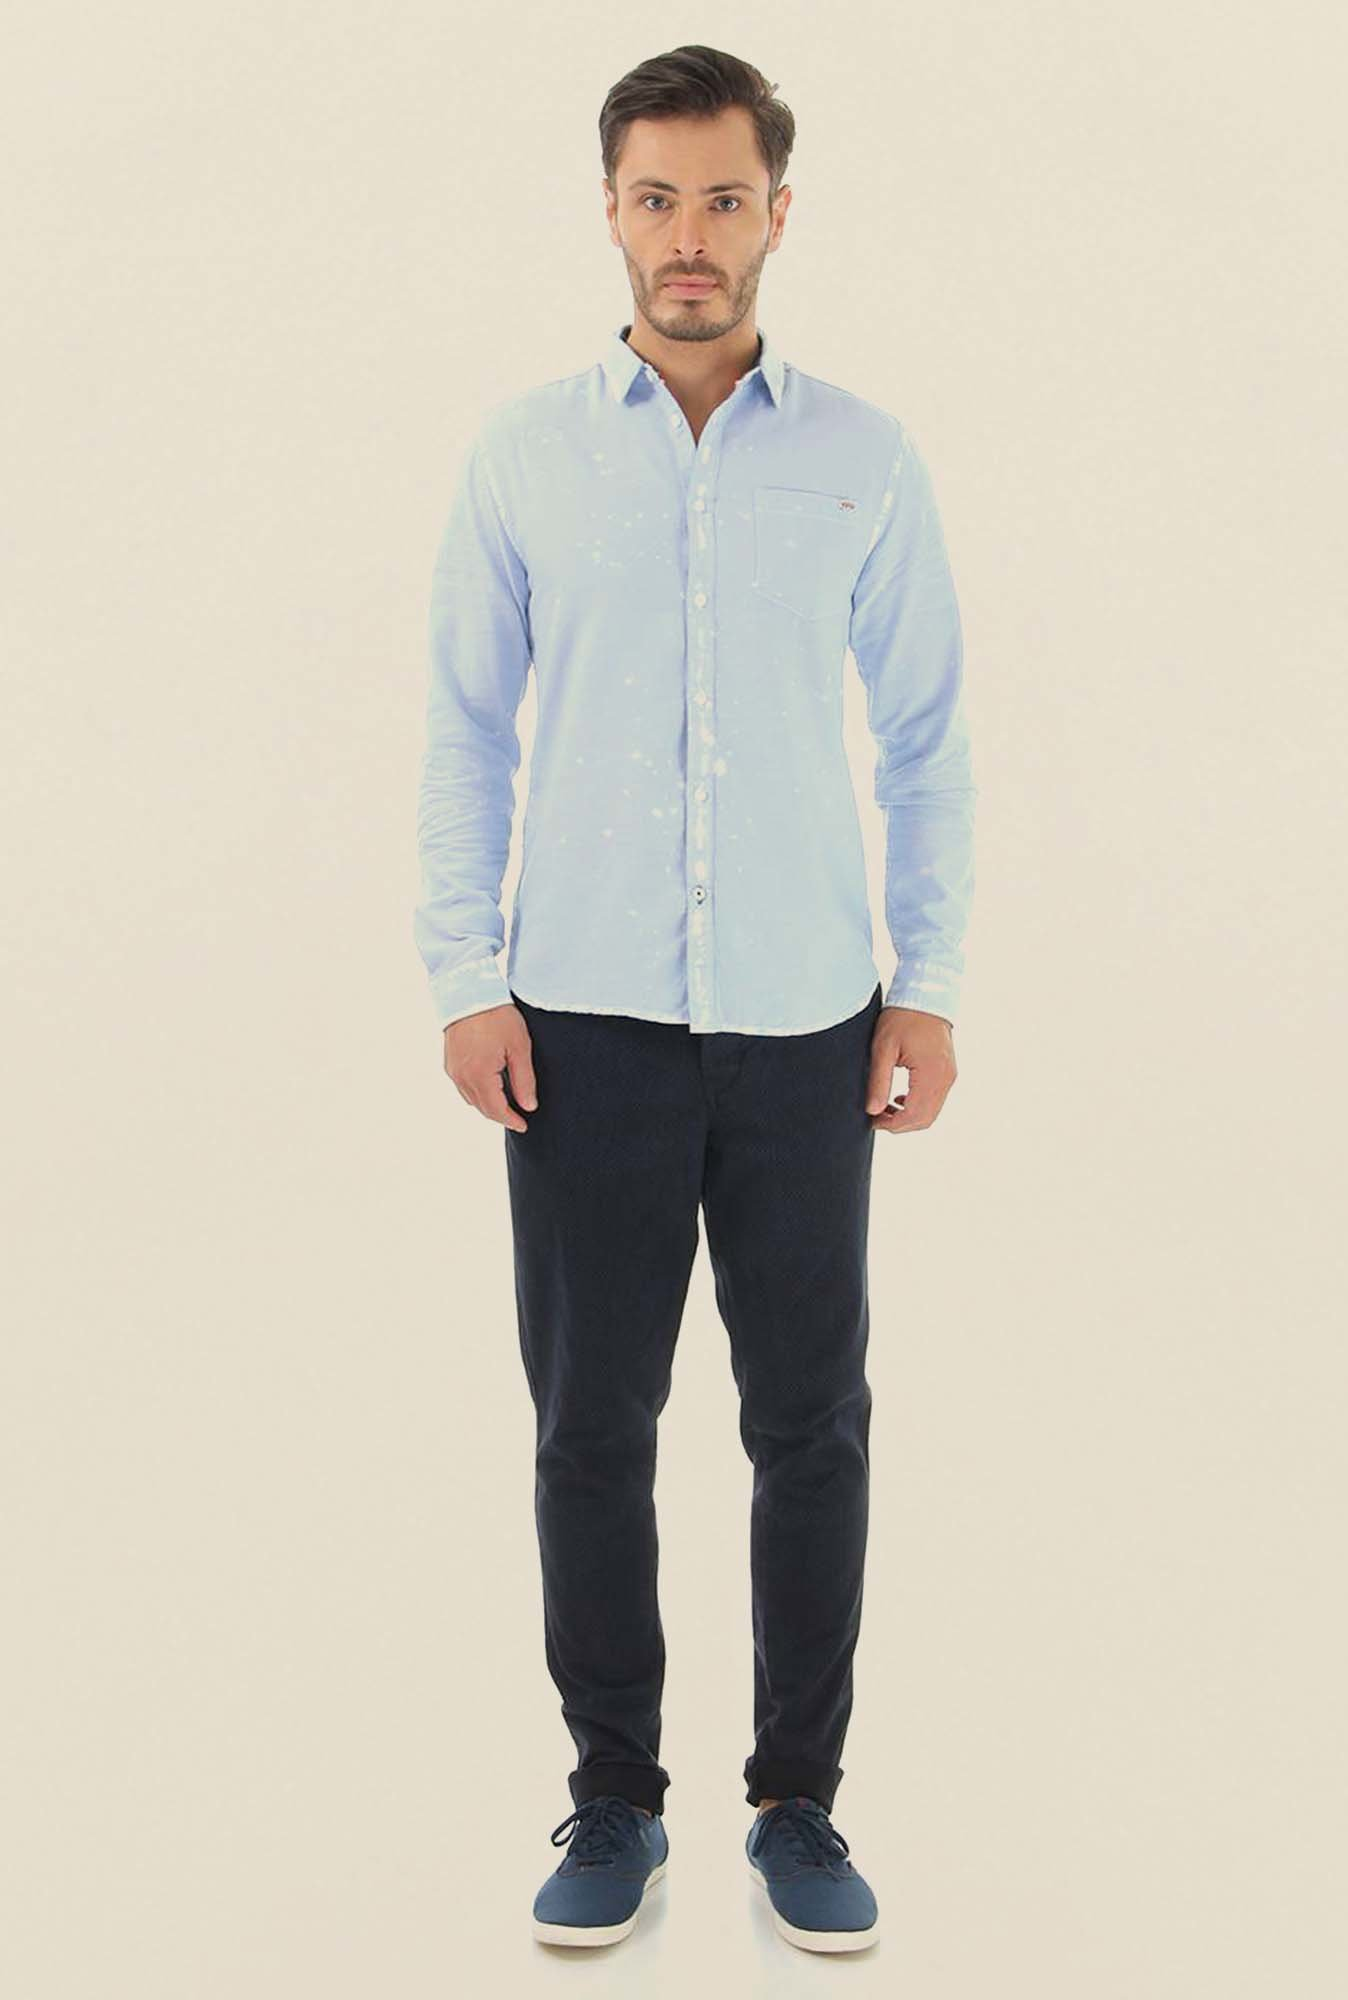 Jack & Jones Light Blue Printed Casual Shirt